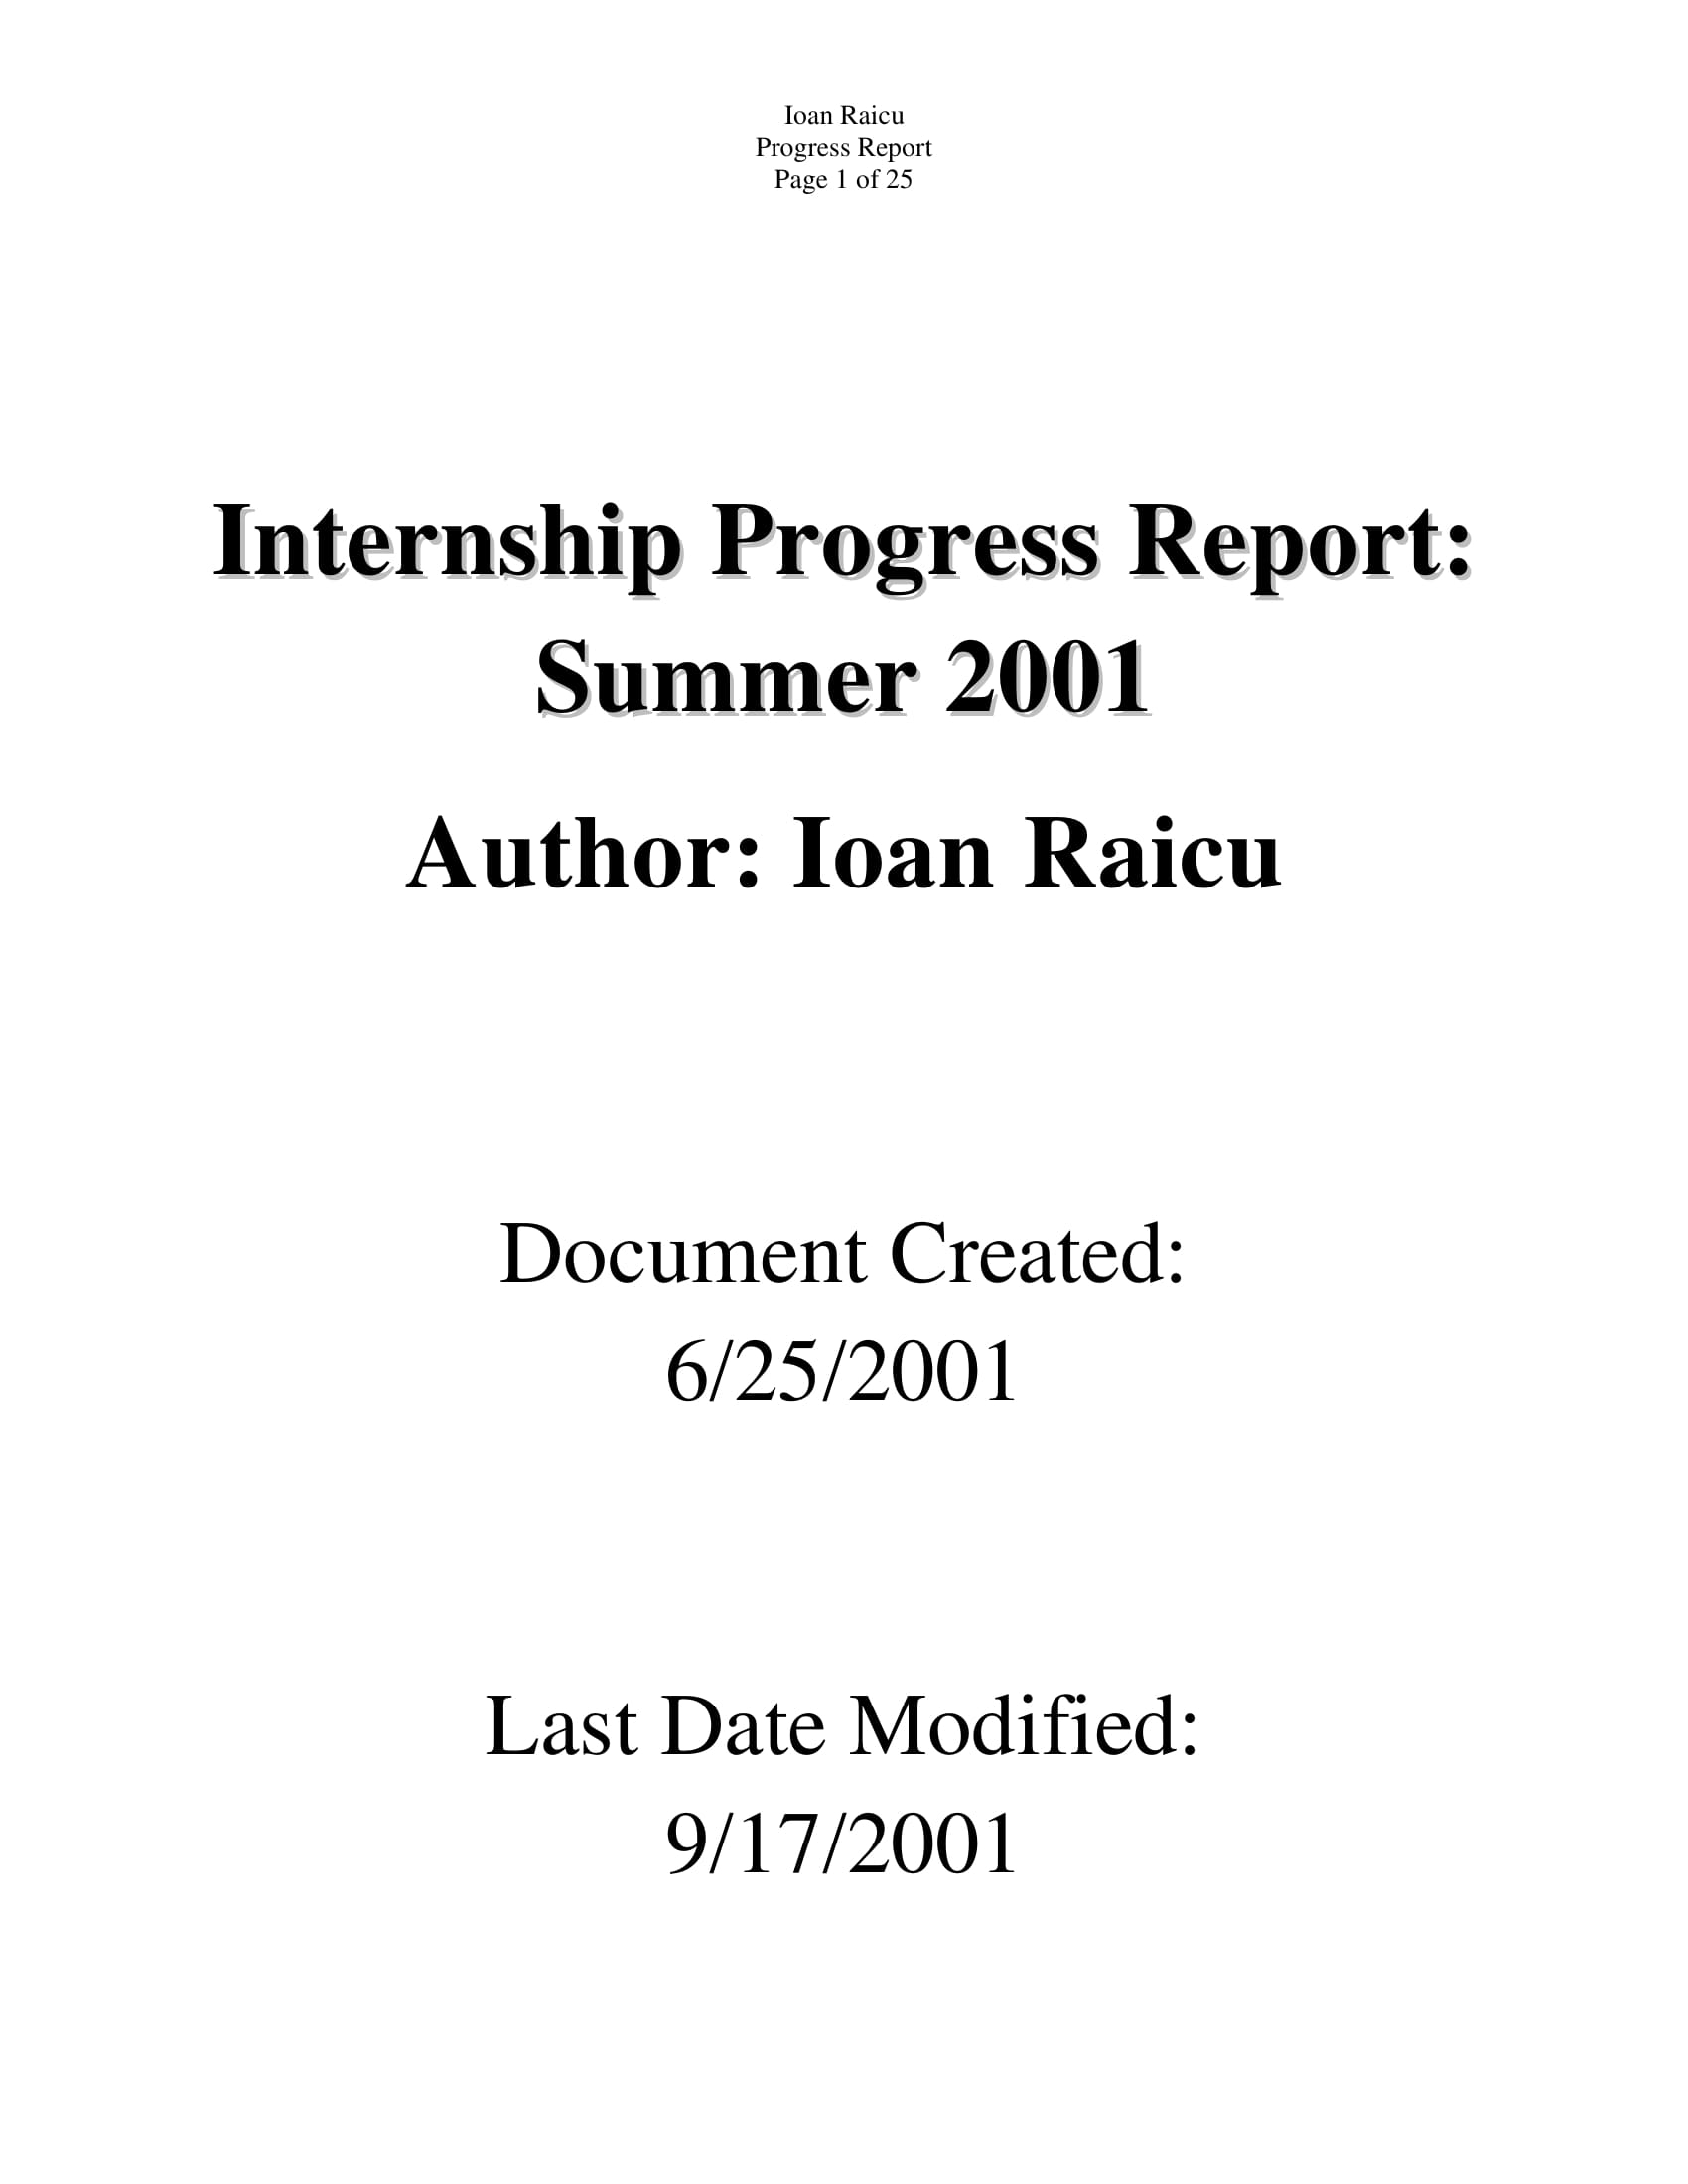 internship weekly operations and progress report example 01